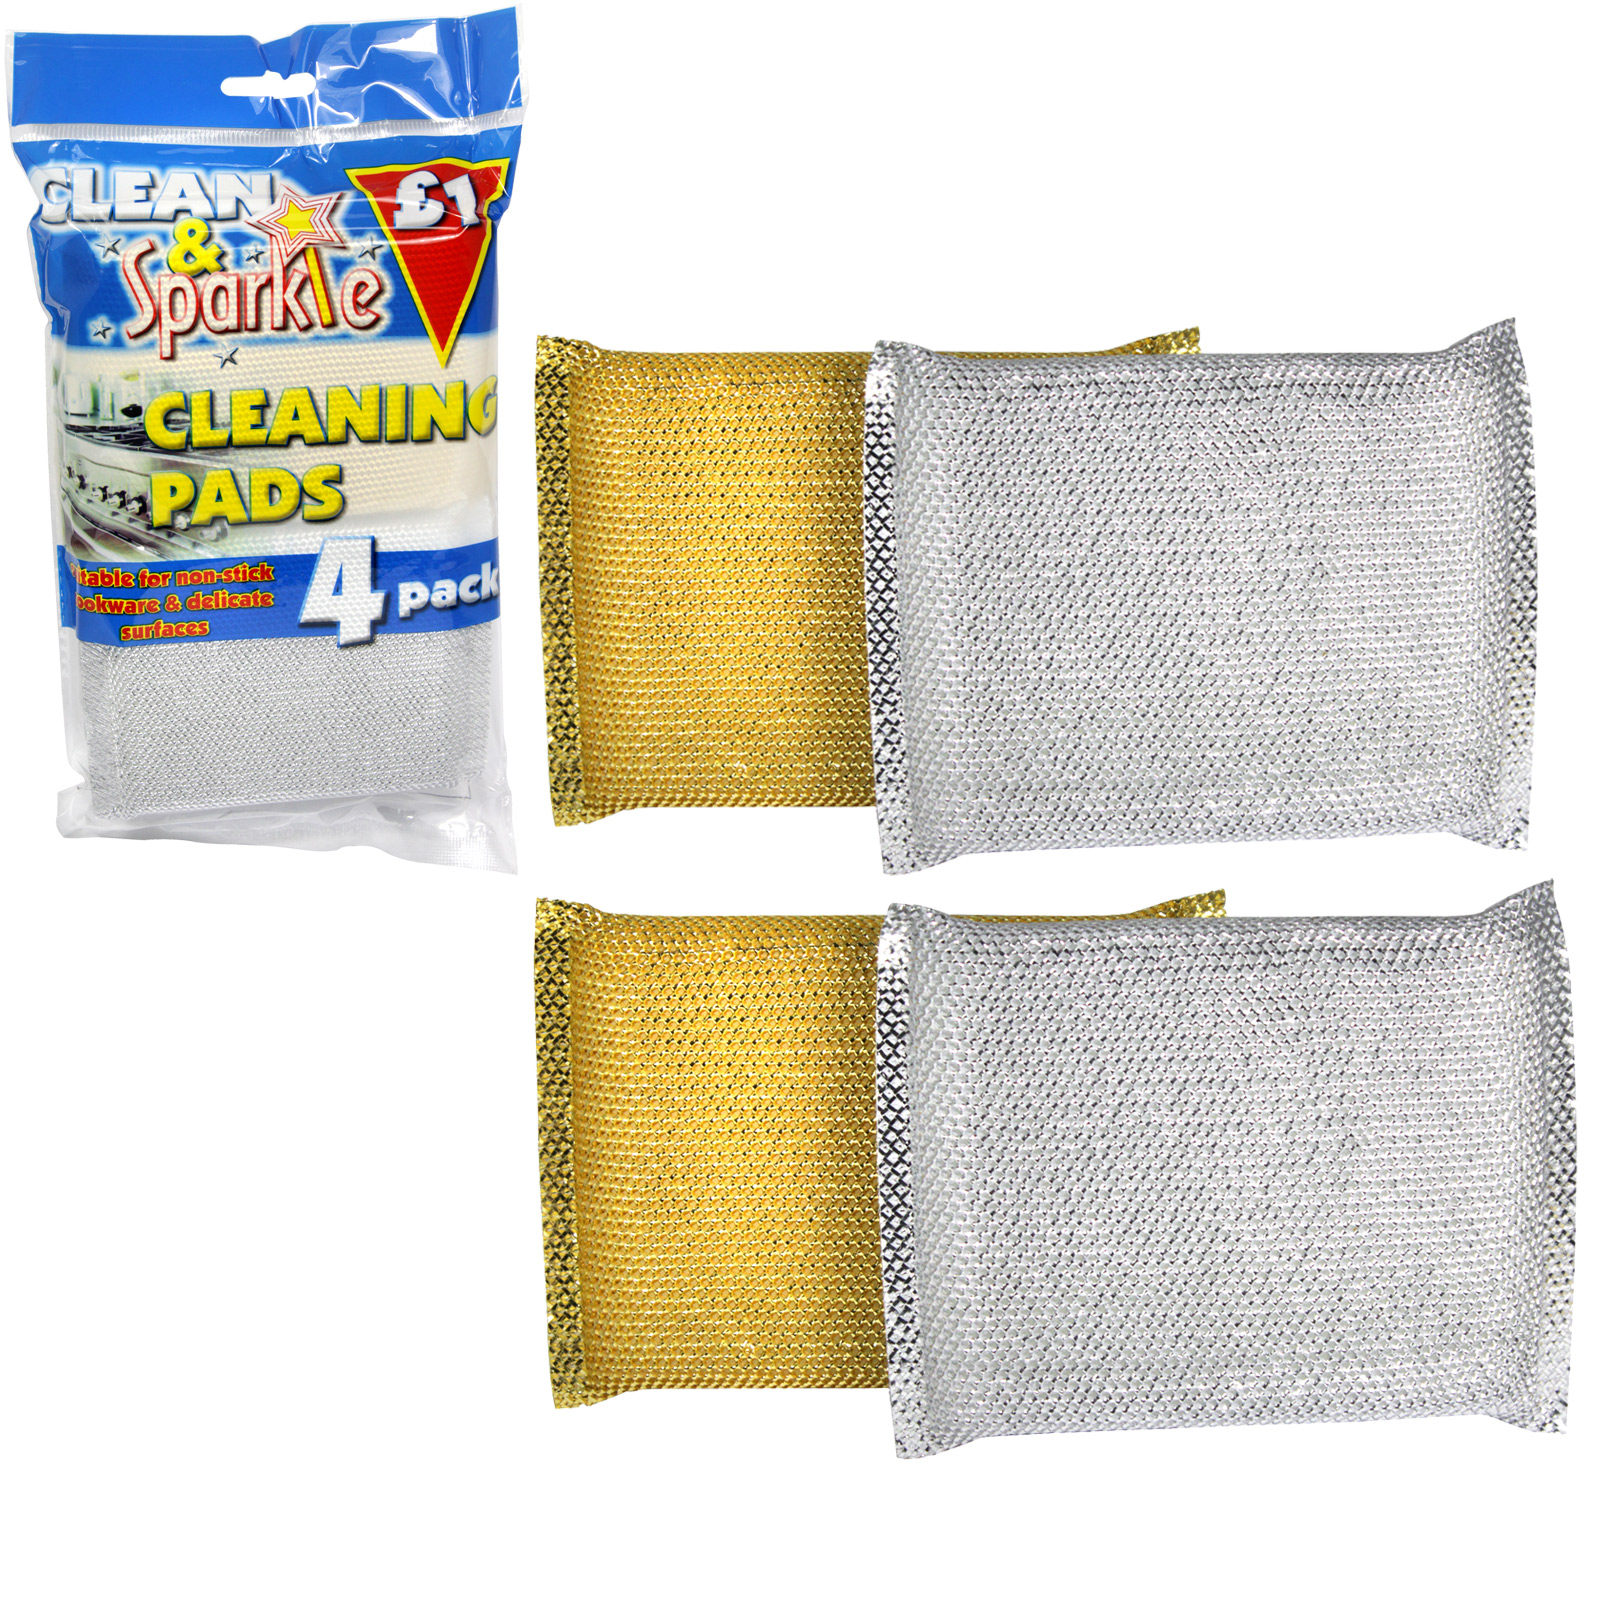 CLEAN+SPARKLE ?1 CLEANING PADS 4PK